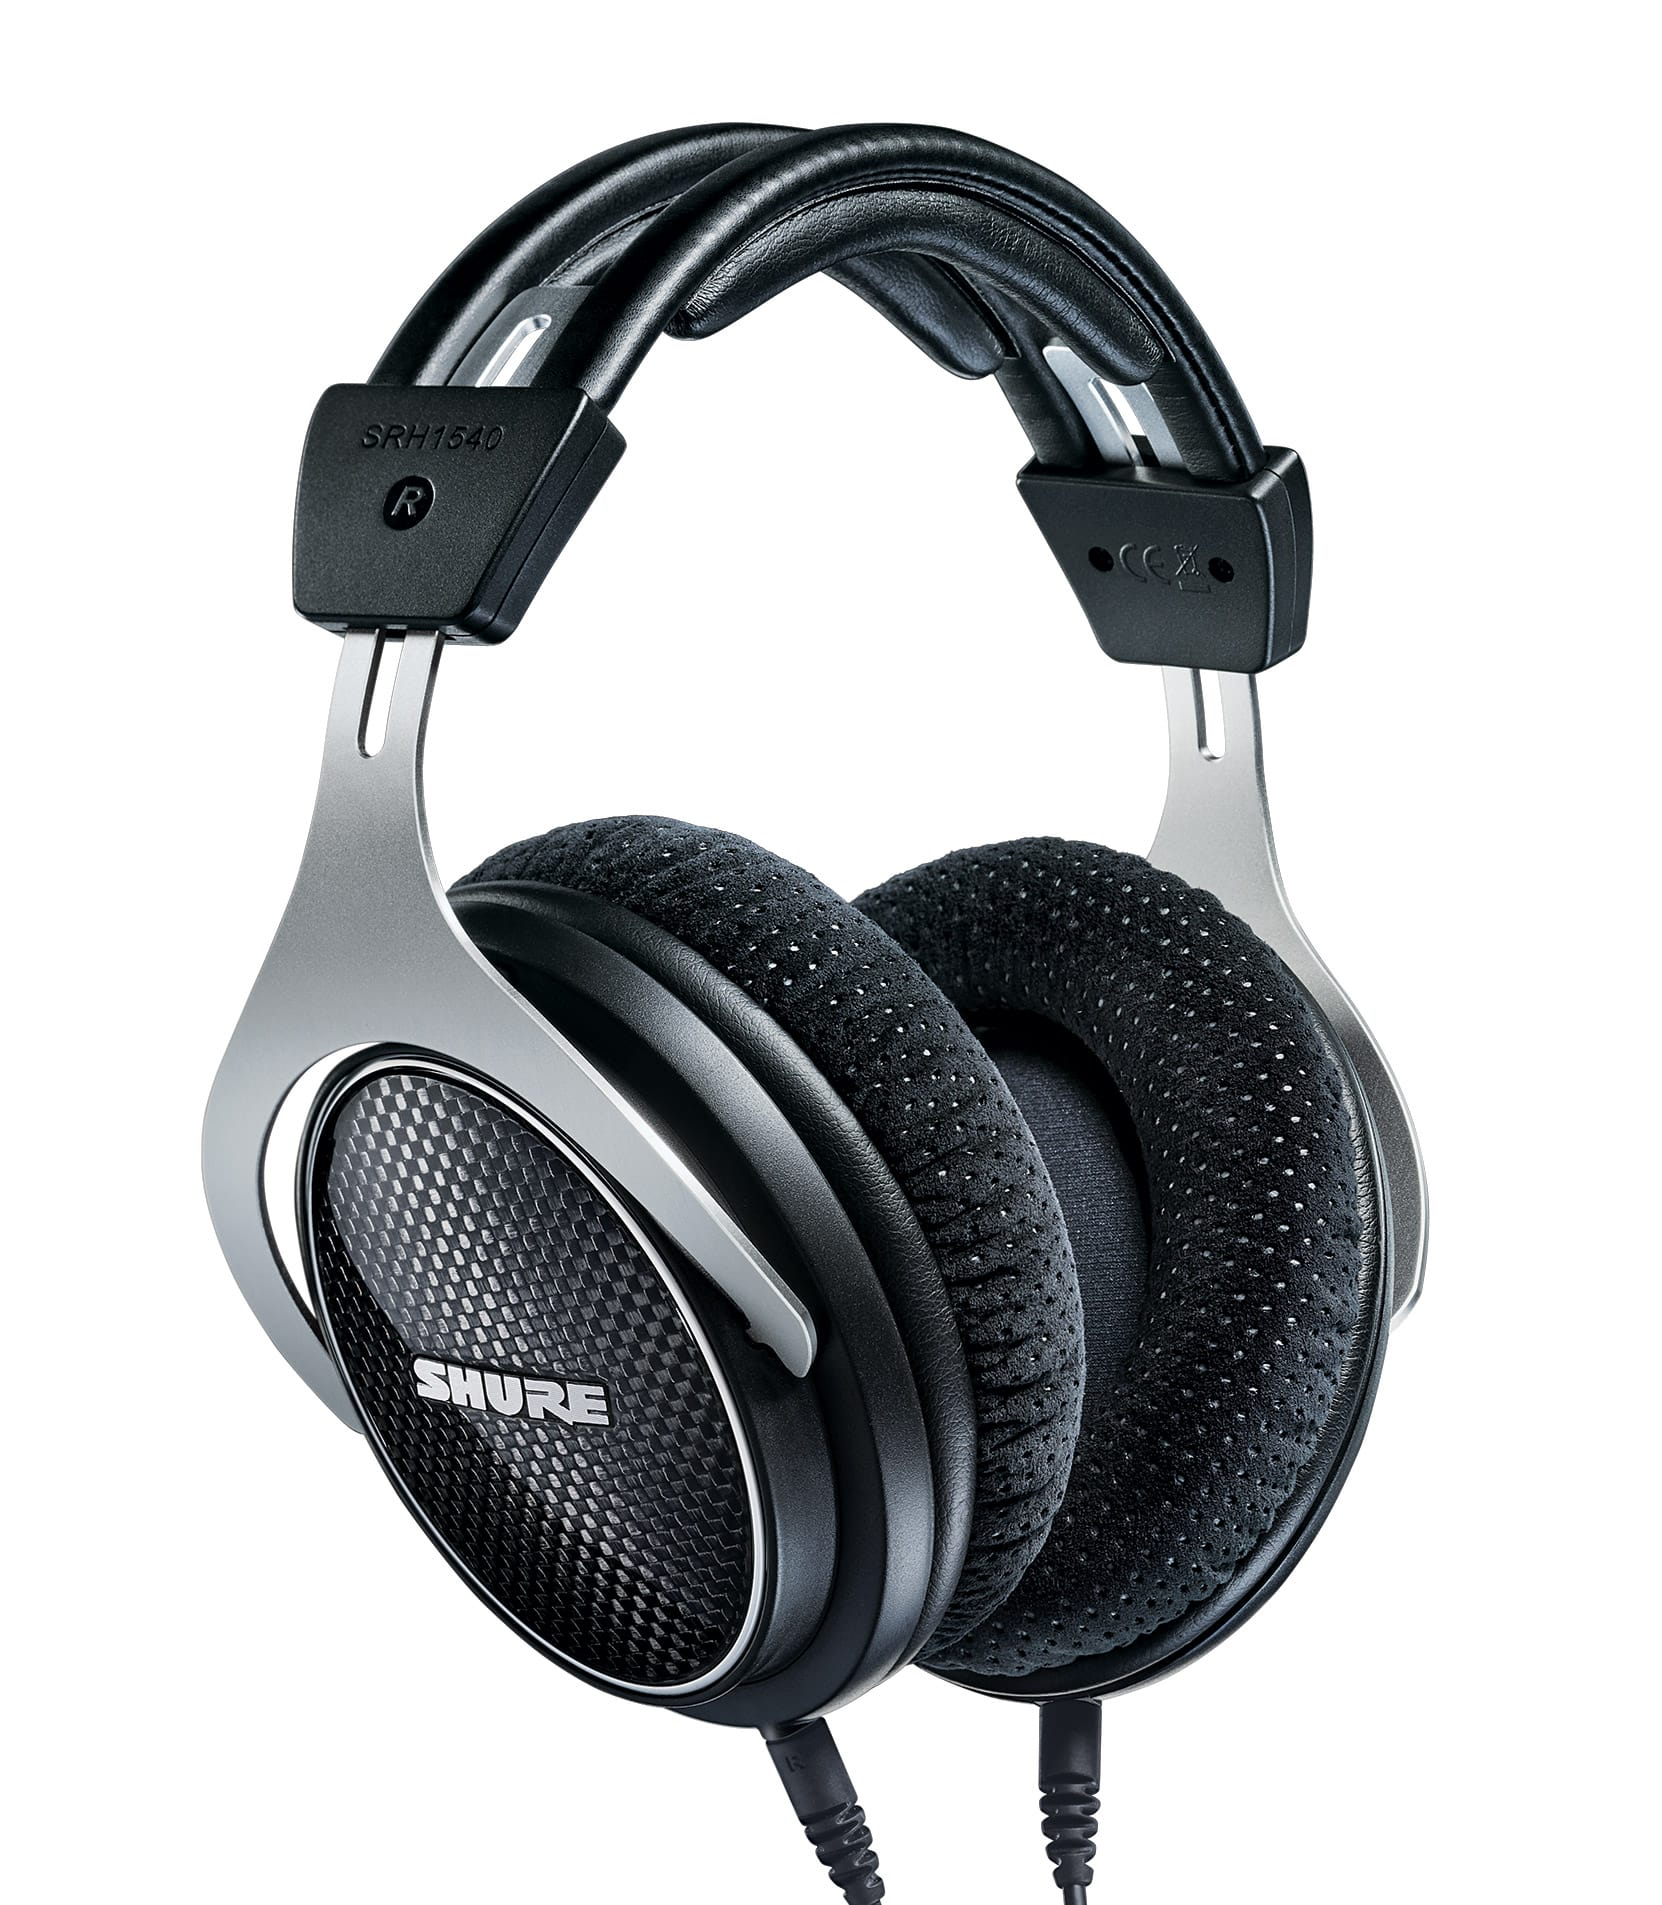 Shure - SRH1540 Premium Closed Back Headphones